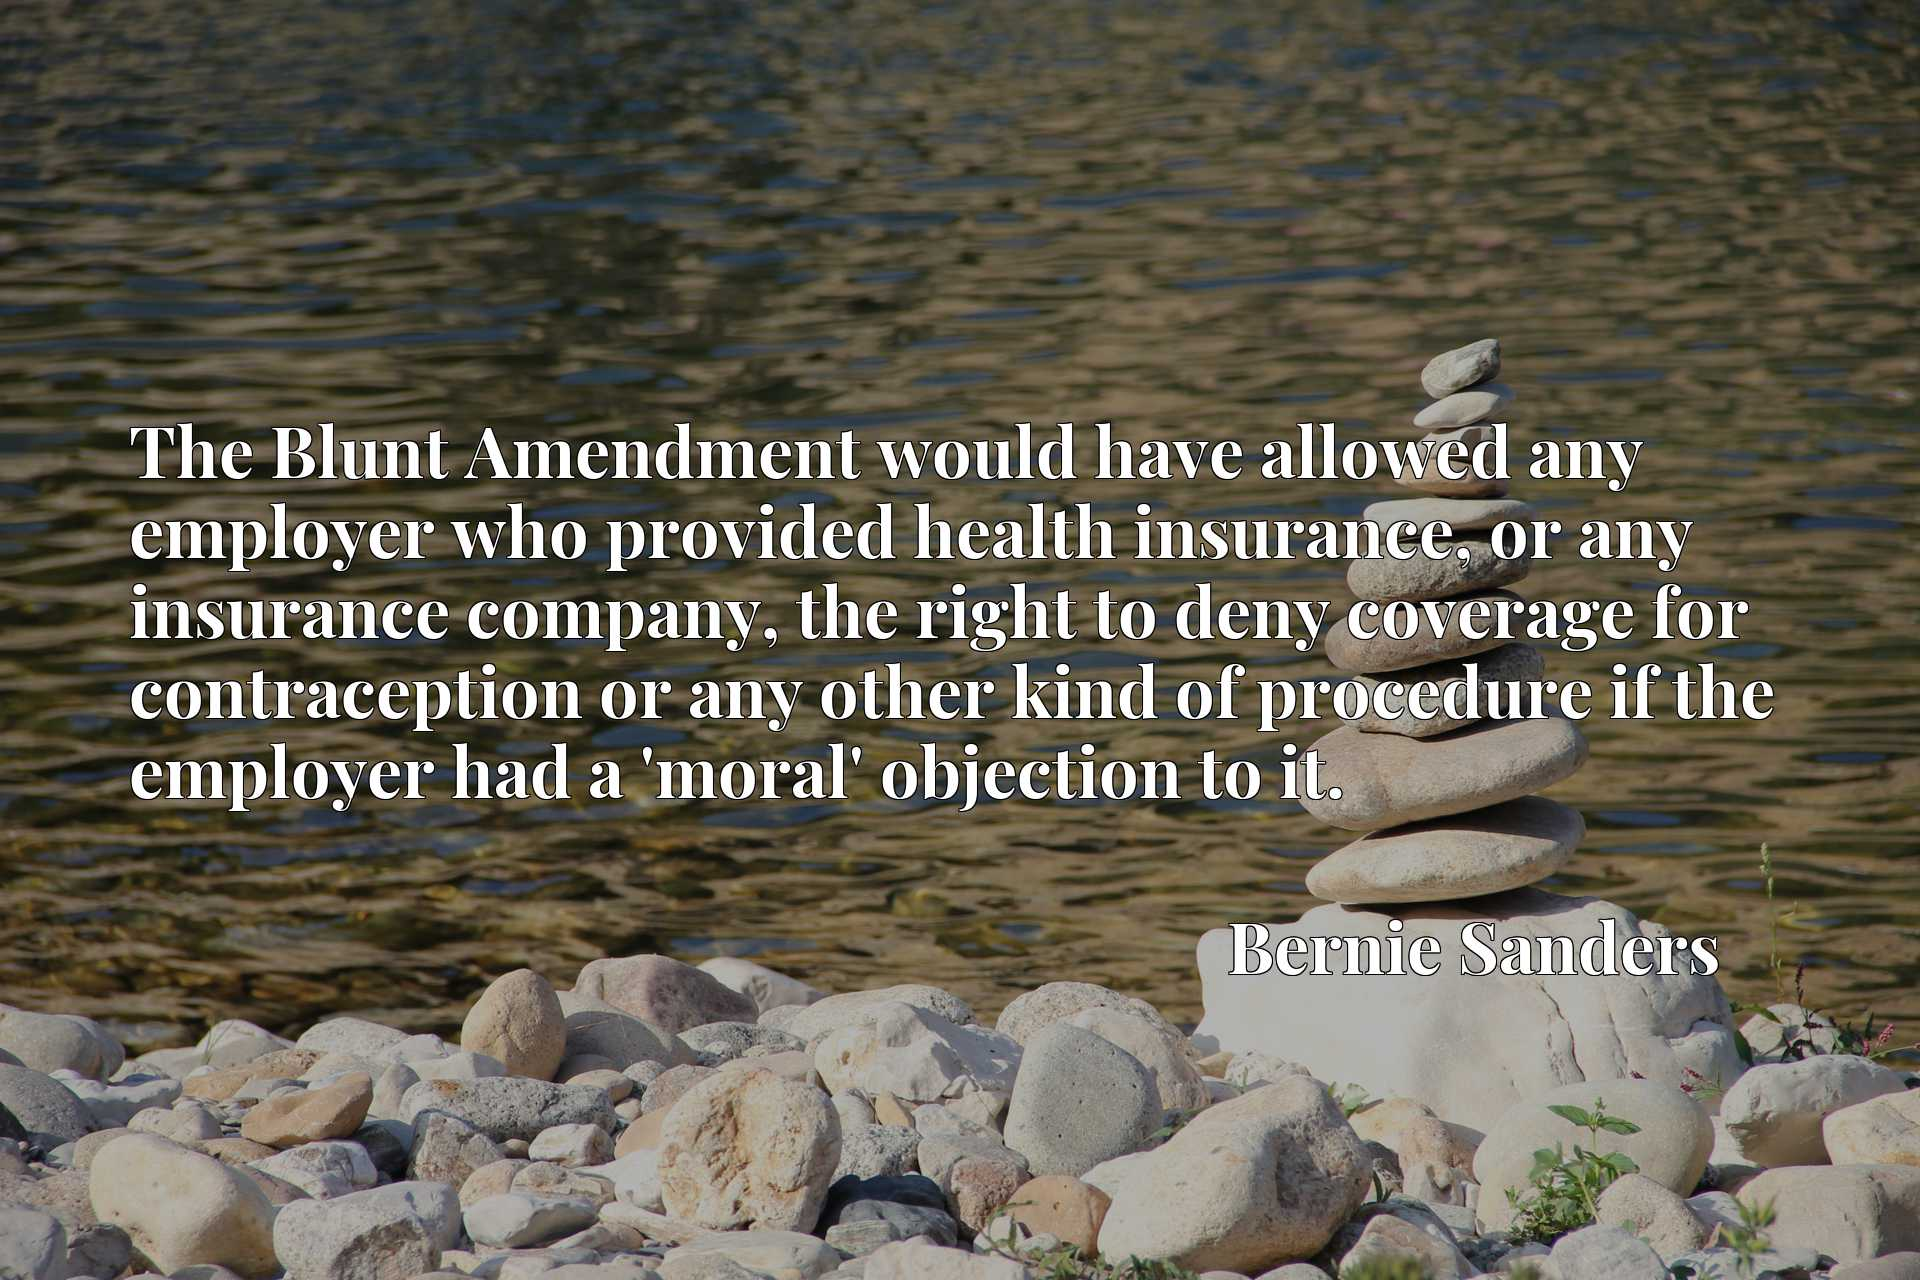 The Blunt Amendment would have allowed any employer who provided health insurance, or any insurance company, the right to deny coverage for contraception or any other kind of procedure if the employer had a 'moral' objection to it.